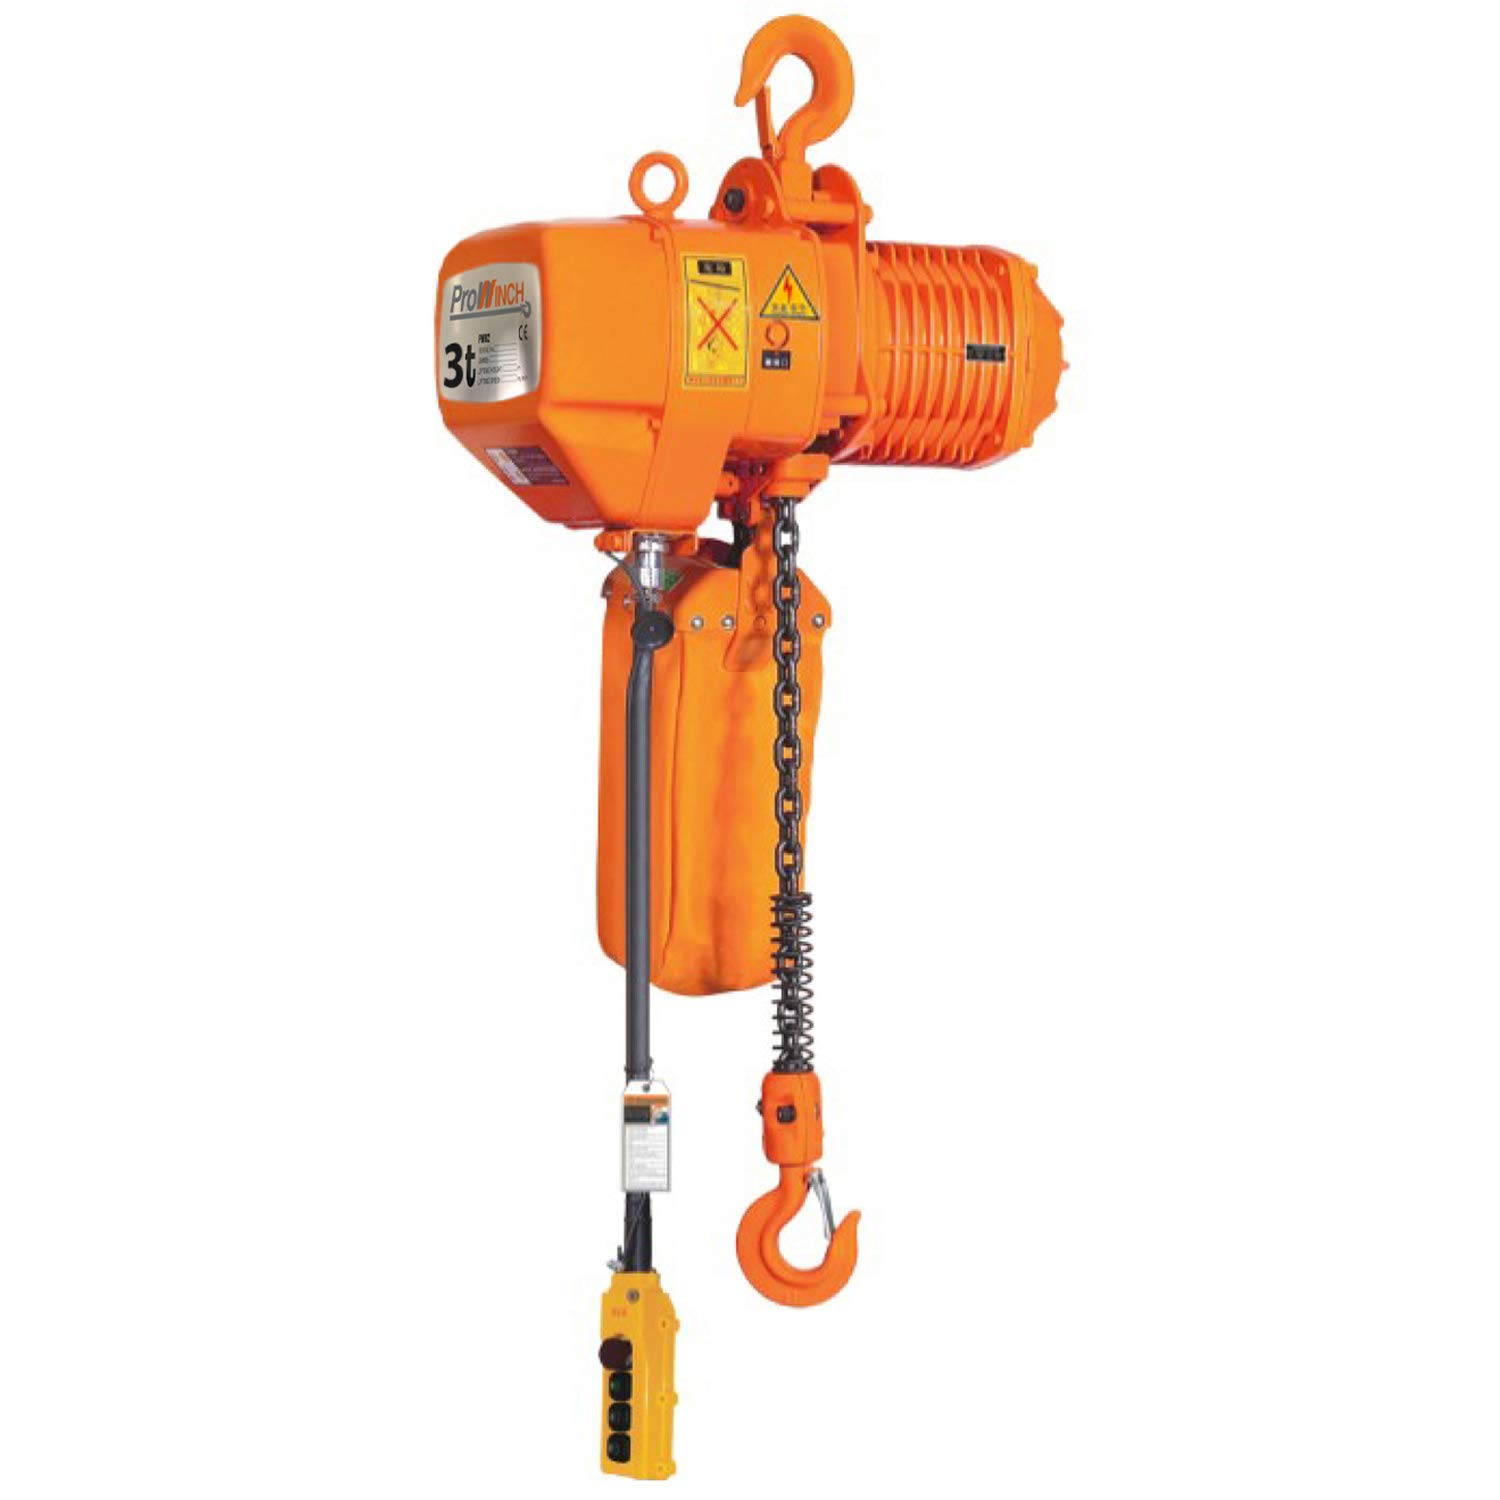 BestEquip 3 Phase 220V Electric Chain Hoist 2 Ton 4400Lbs 10ft Lift Height Electrical Hook Mount Chain Hoist G80 Chain Hoist Lift Electric Hoist Double Chain with Pendant Control